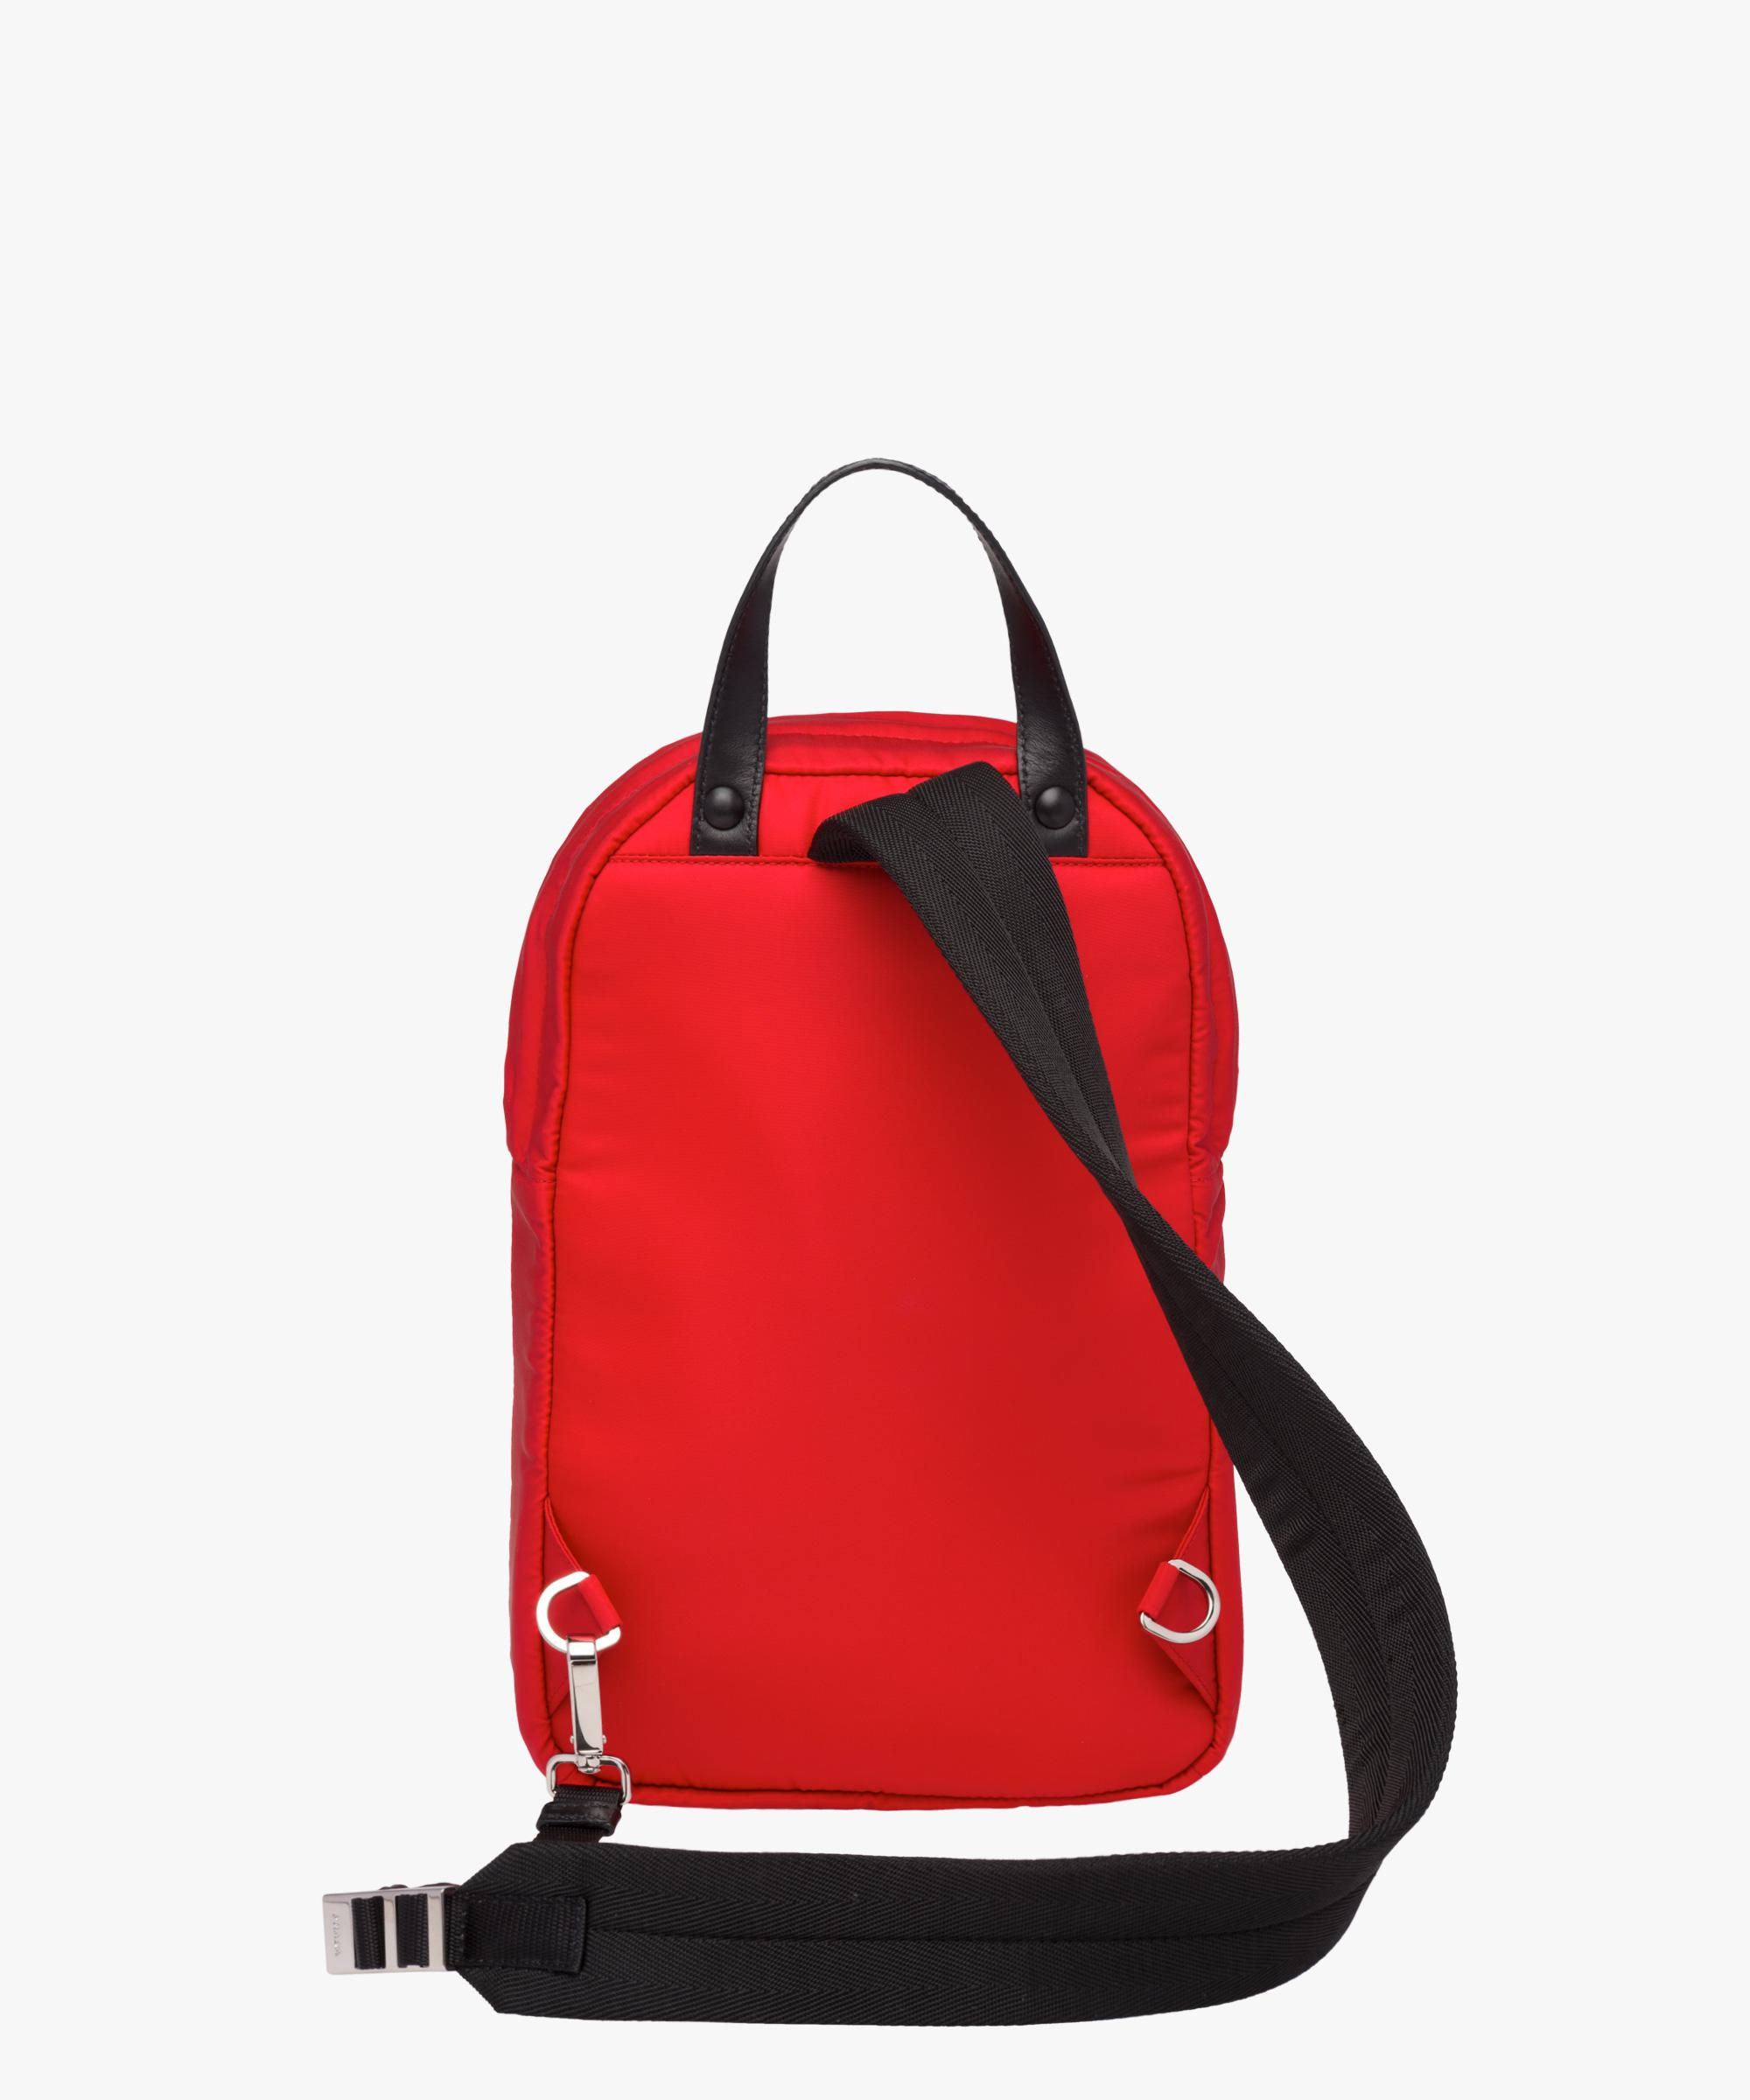 ... closeout lyst prada nylon one shoulder backpack in red for men a9e3c  18ace 15032ddb4137a